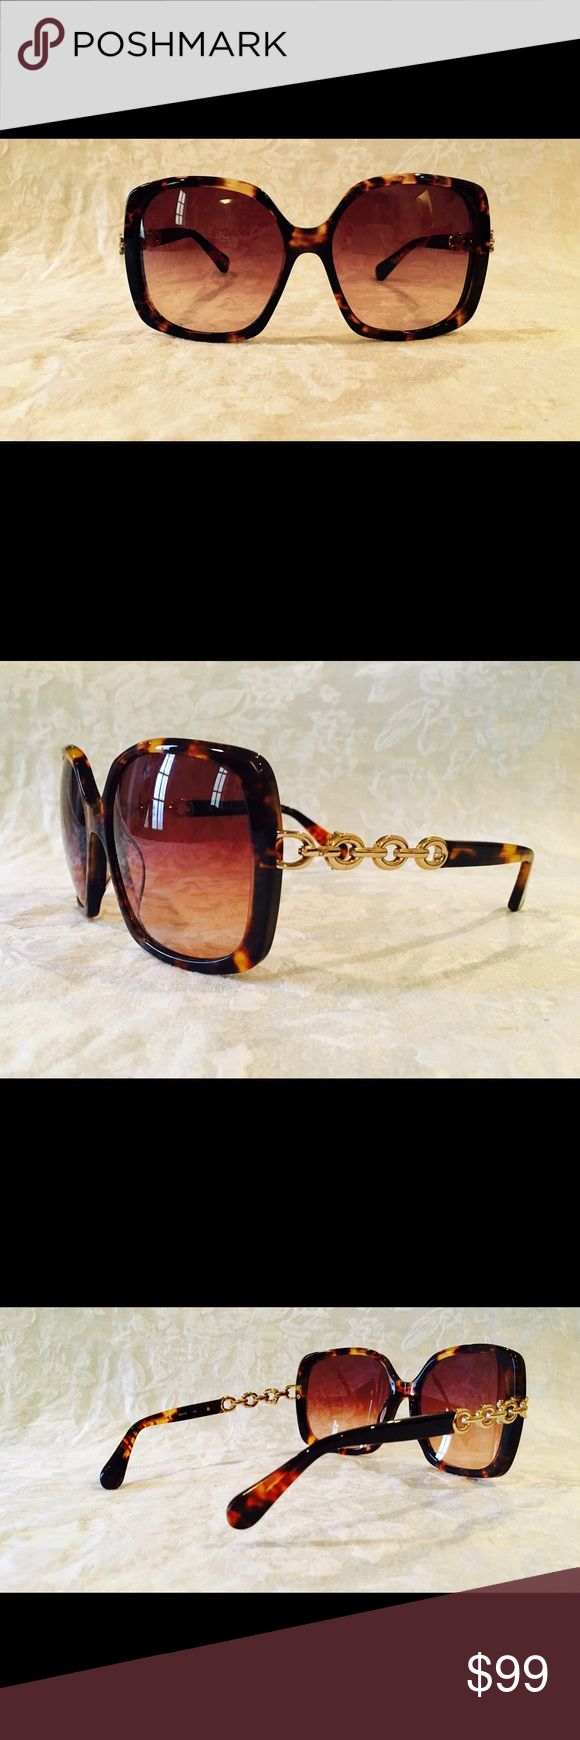 Diane von Furstenberg women's sunglasses. NEW!!! Tortoiseshell square oversized frames with gold hardware on the arms. Sophisticated and stunning. NEW!! Diane von Furstenberg Accessories Sunglasses